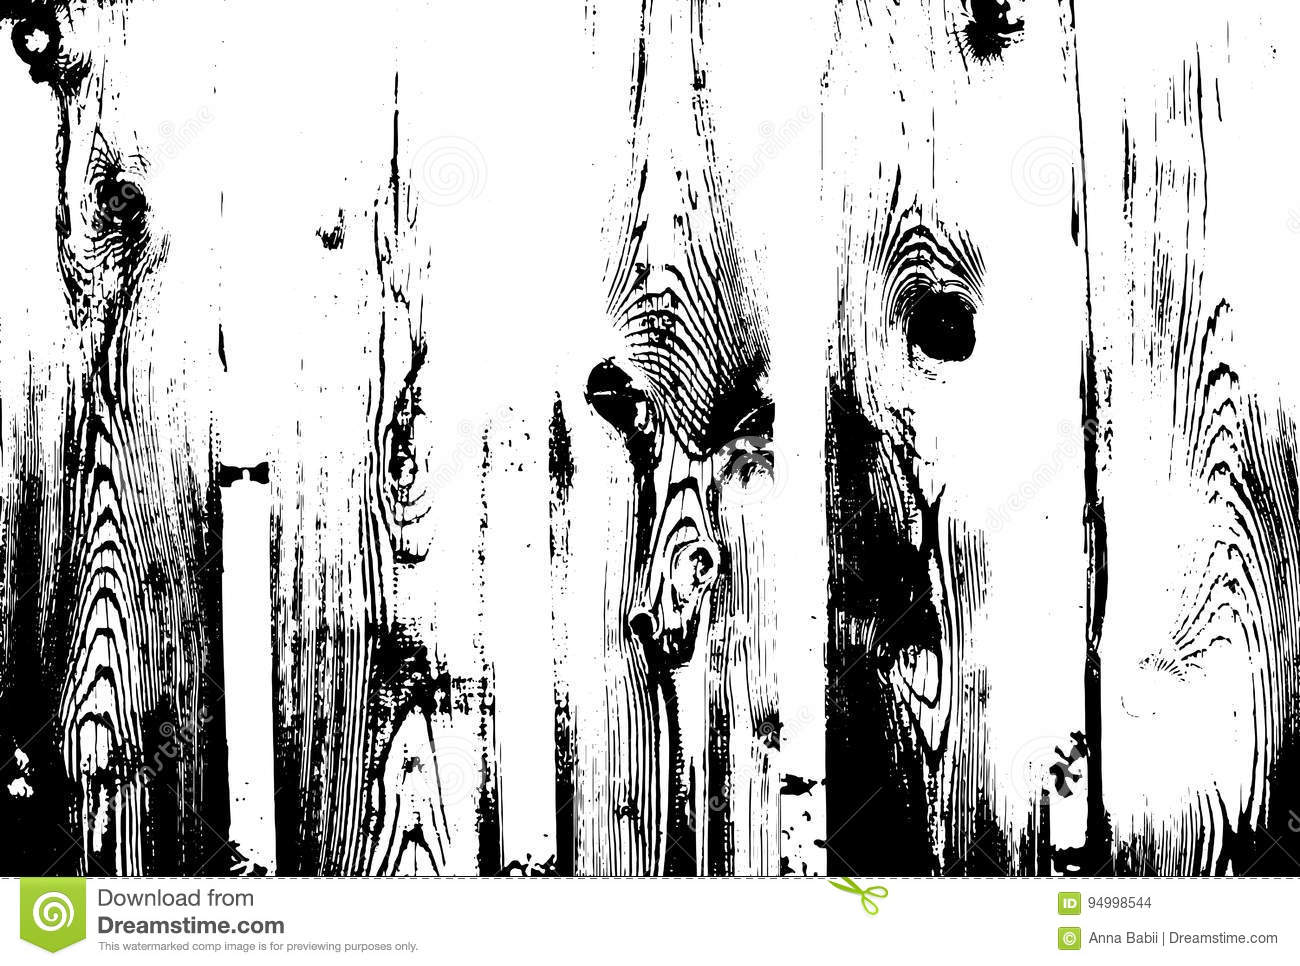 Wood grunge texture. Natural wooden isolated background. Vector illustration.